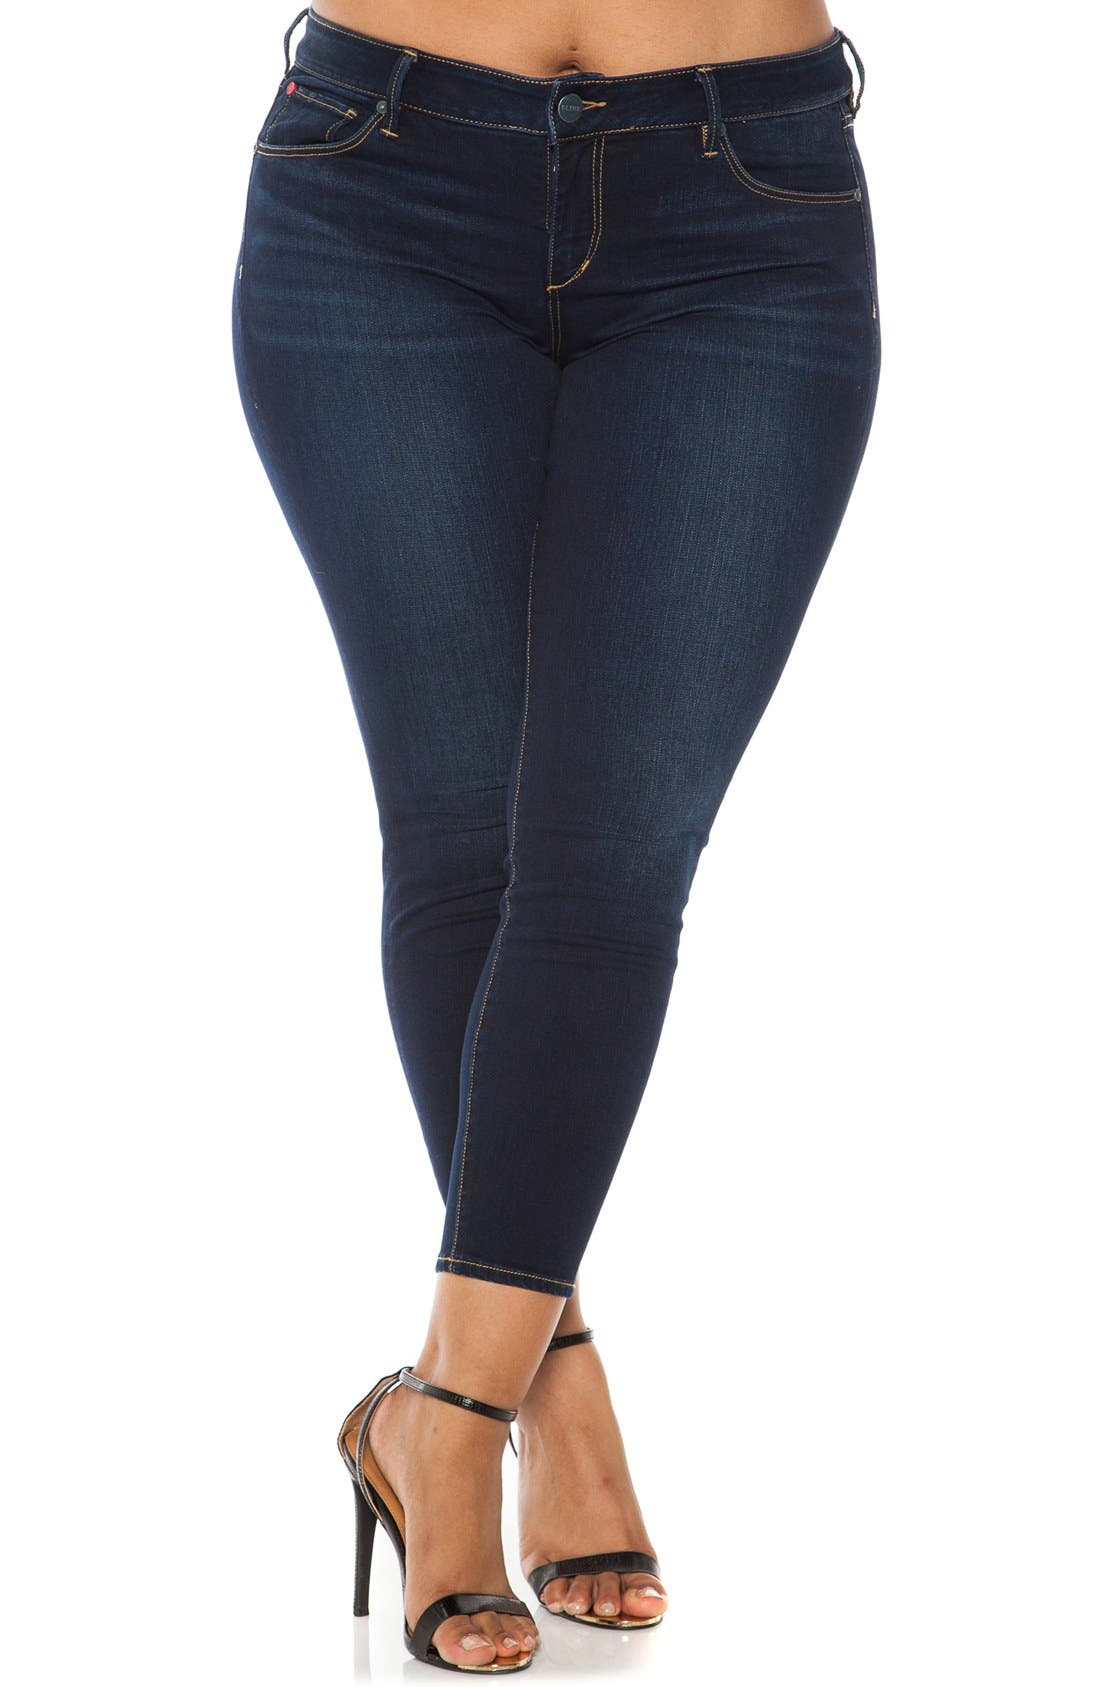 SLINK Jeans Stretch Ankle Skinny Jeans (Plus Size) | Nordstrom